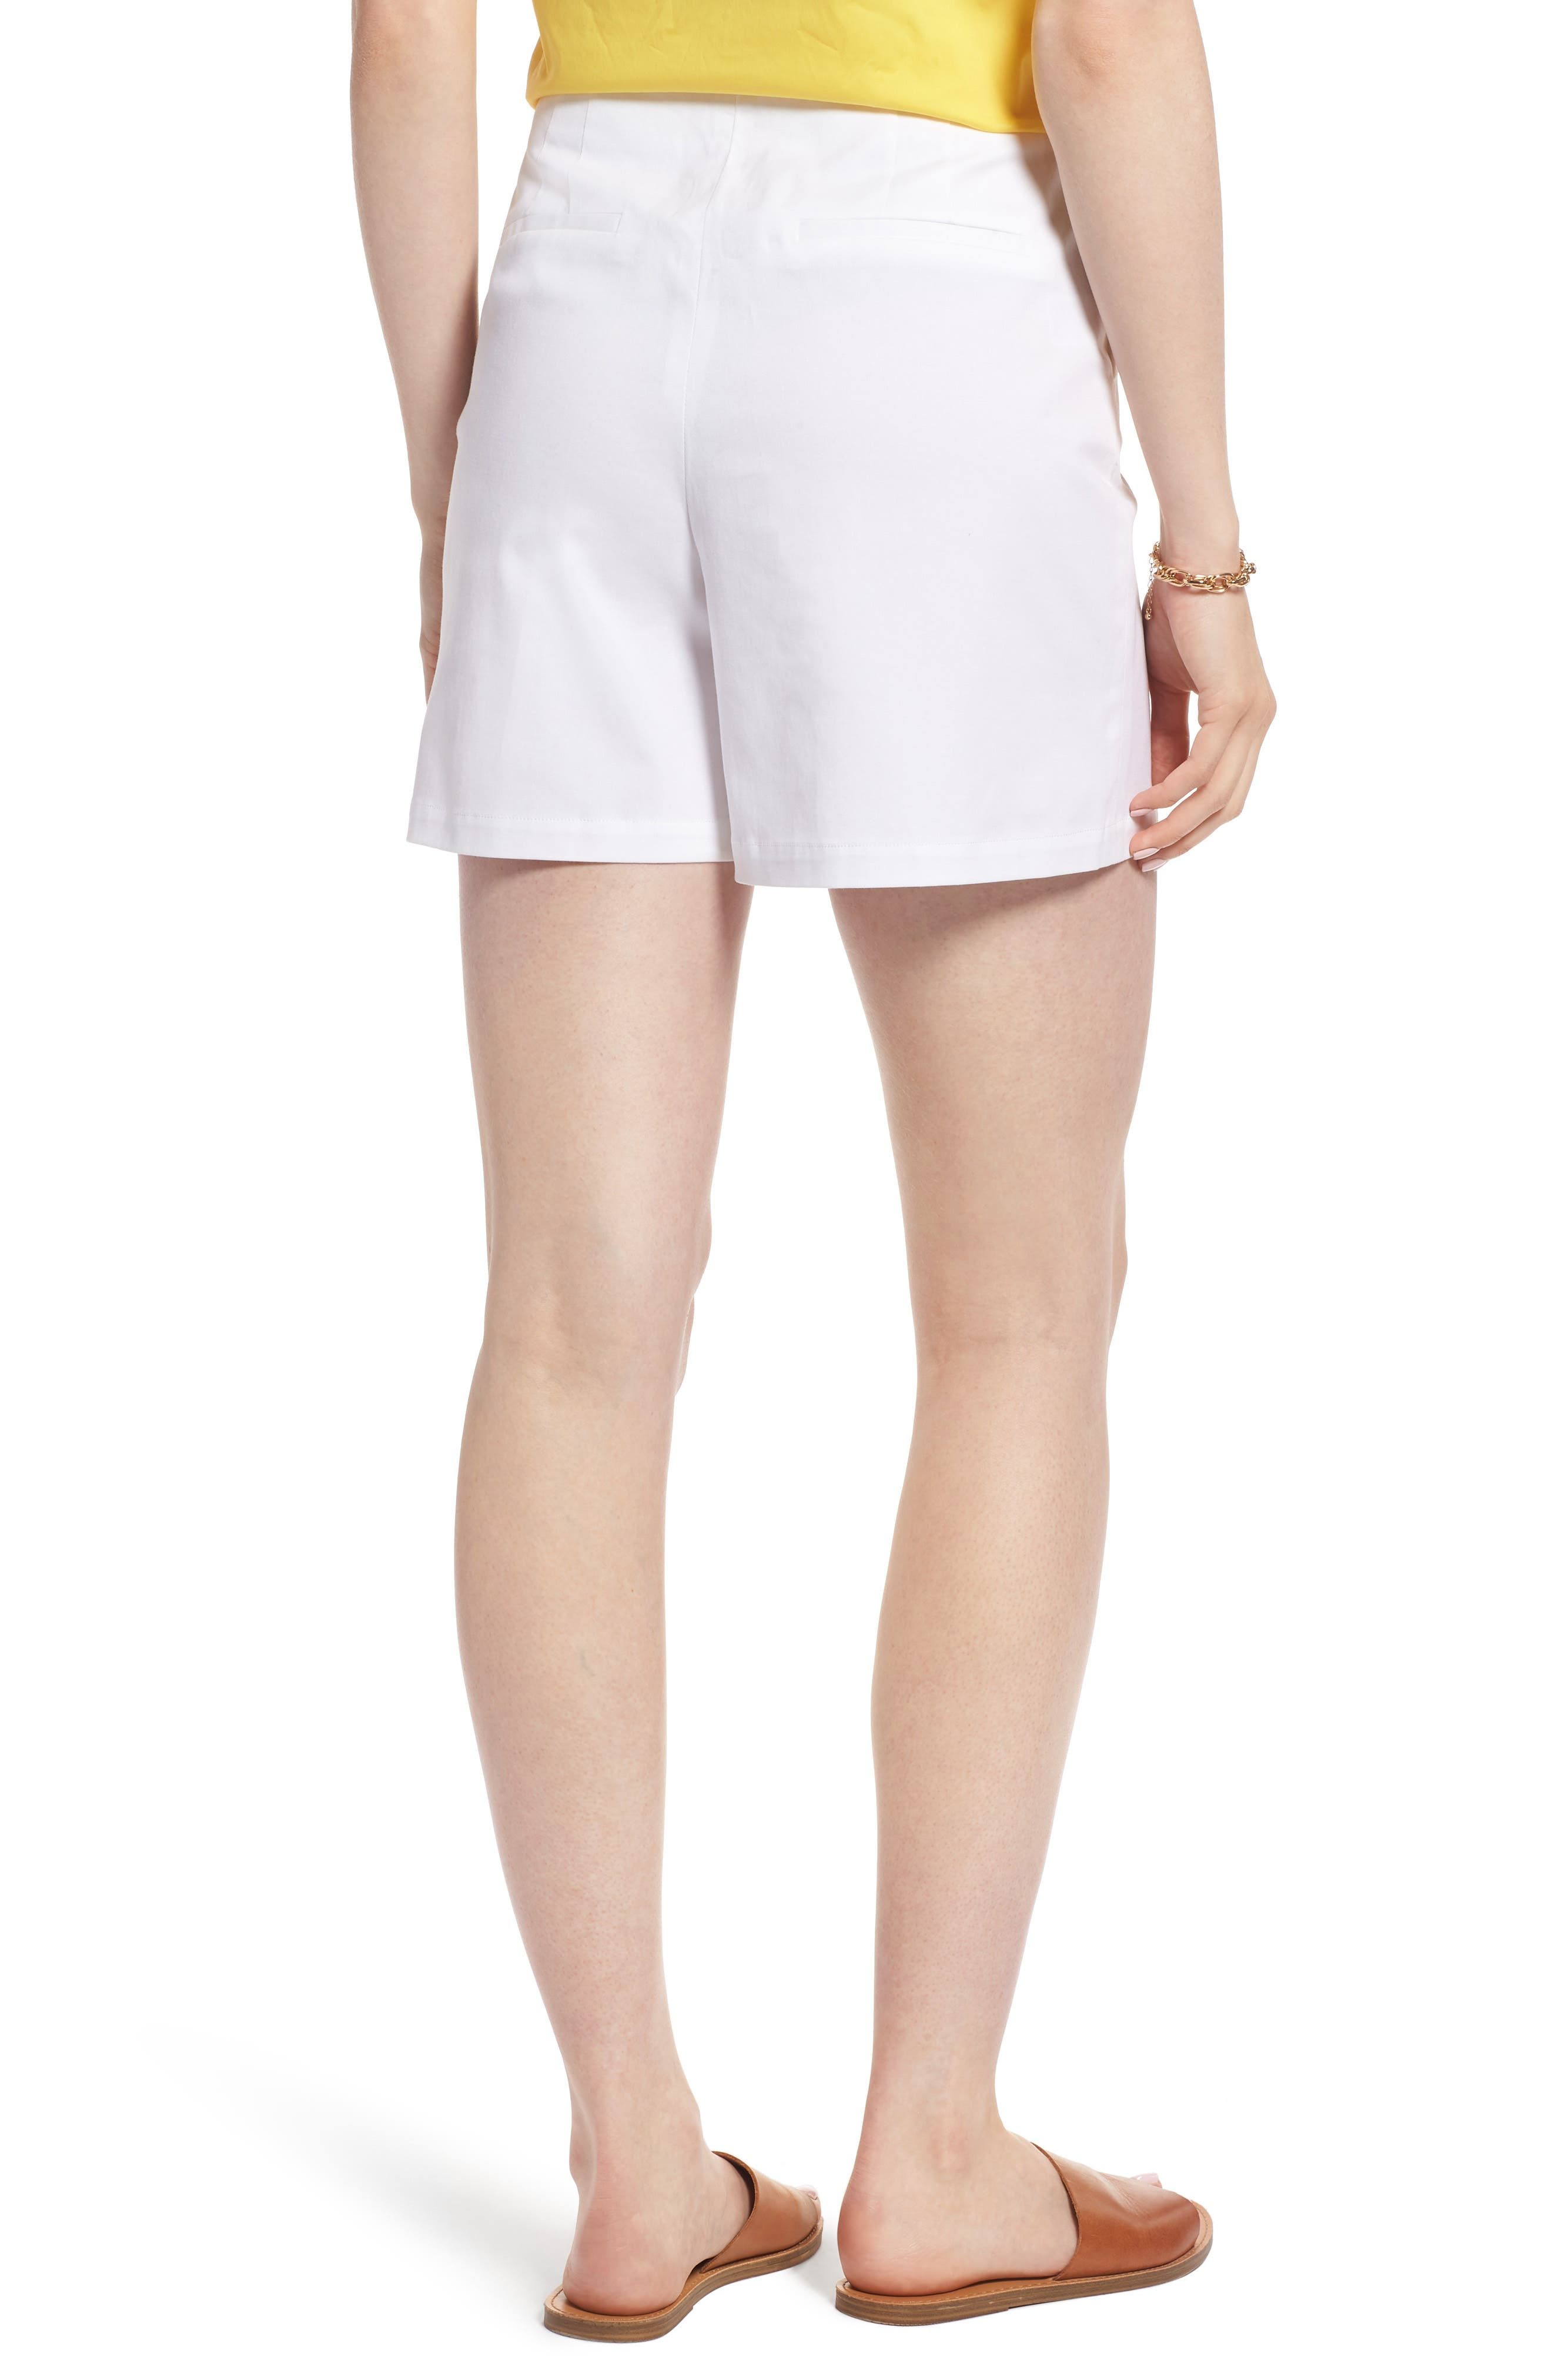 Clean Twill Shorts,                             Alternate thumbnail 2, color,                             White